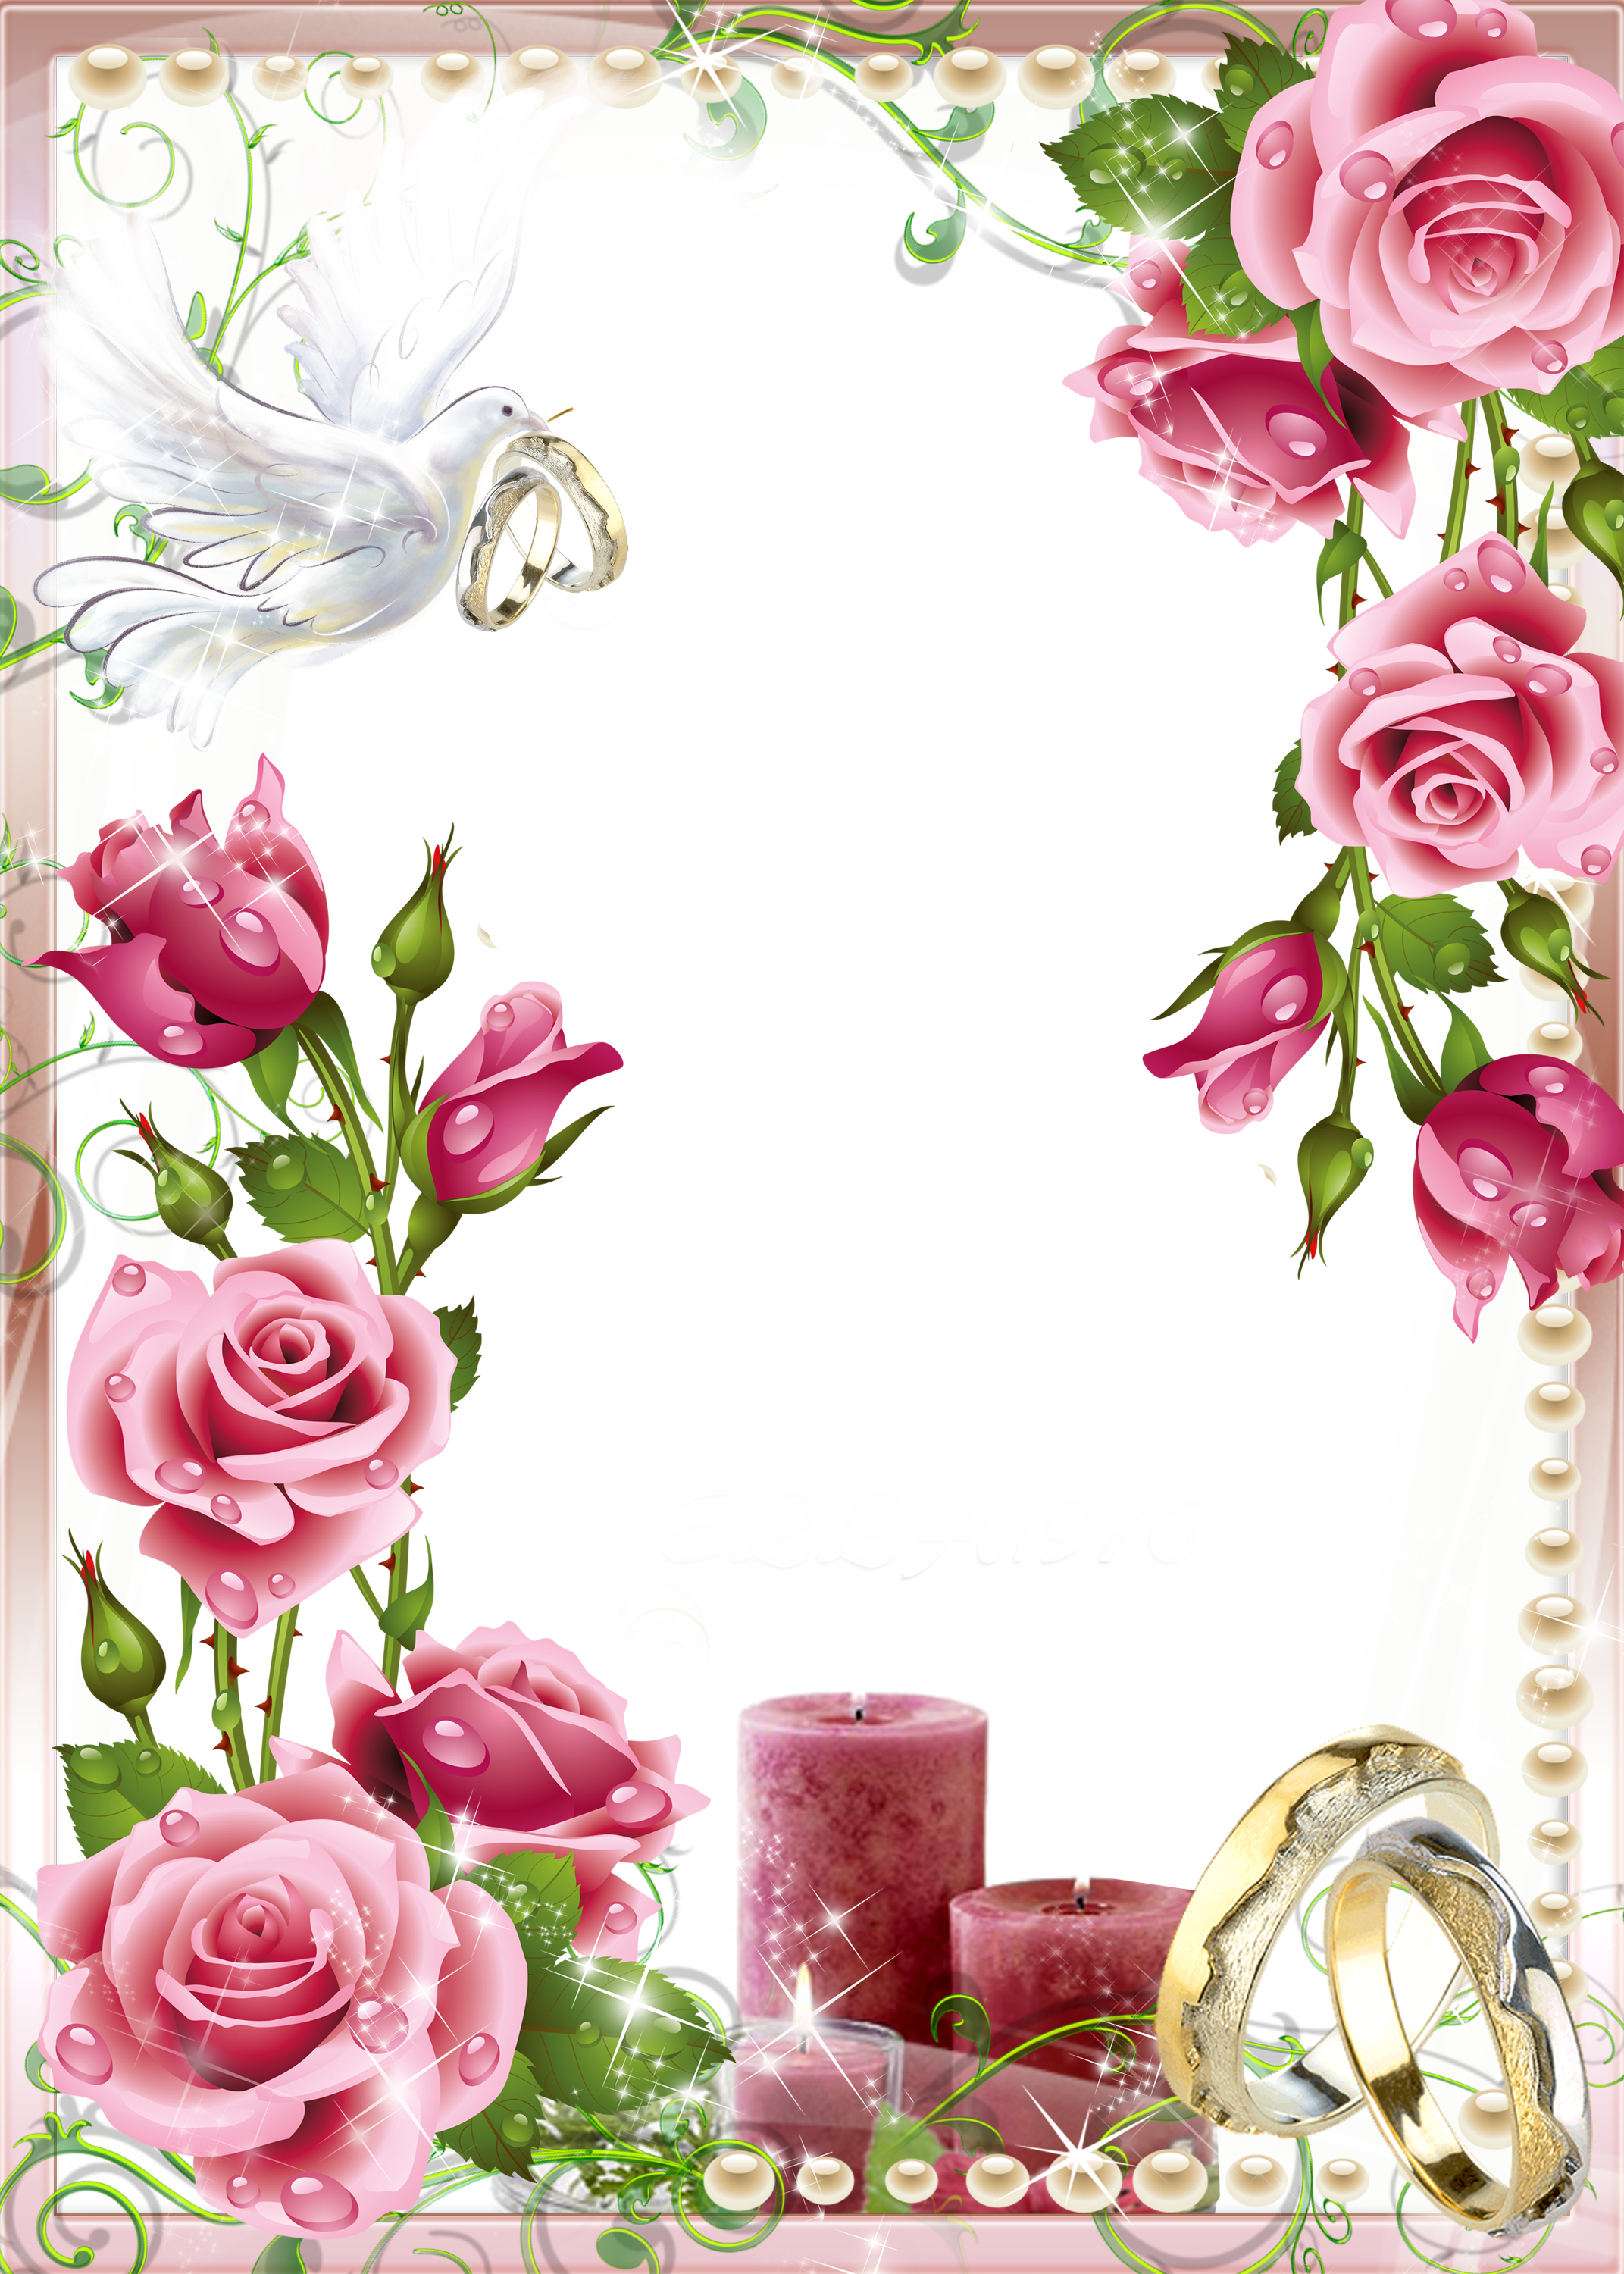 Clipart rose wedding. Soft pink photo png